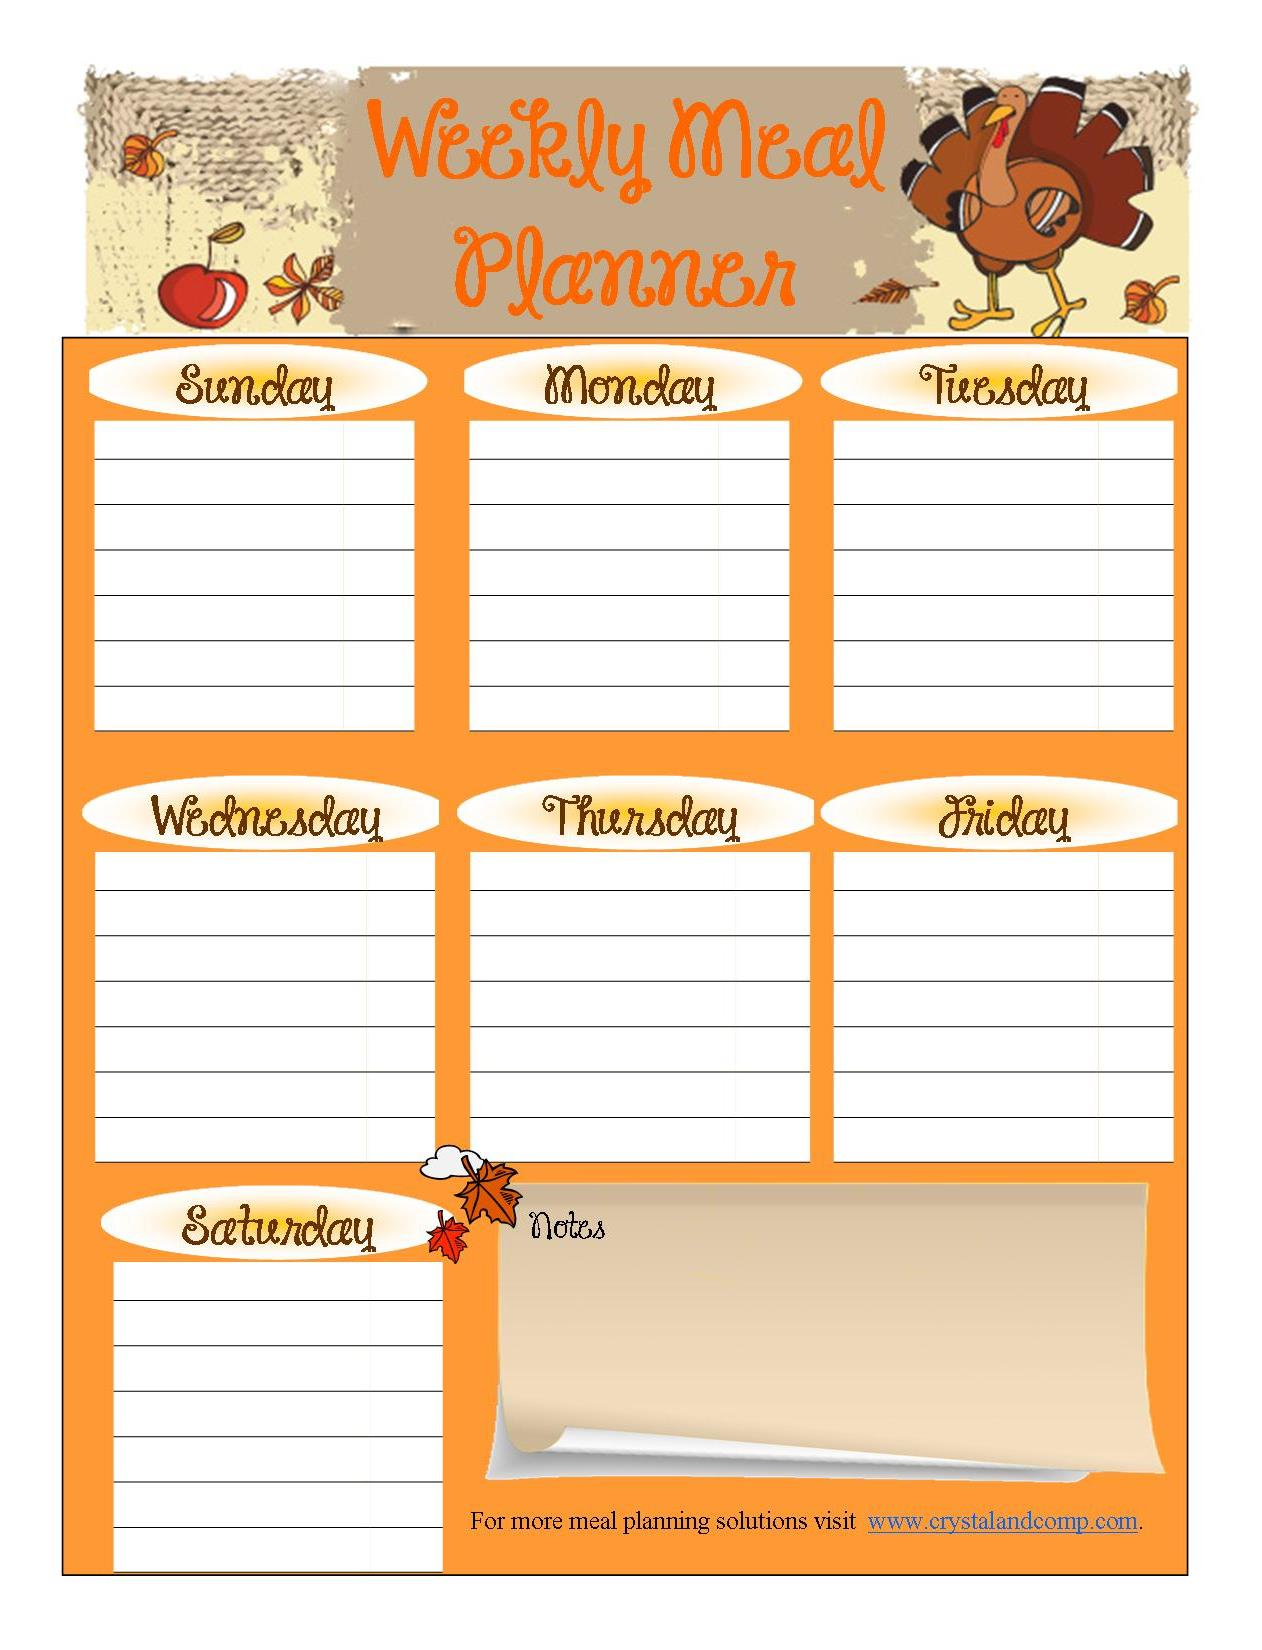 7 Best Images of Free Printable Menu Planning Sheets ...